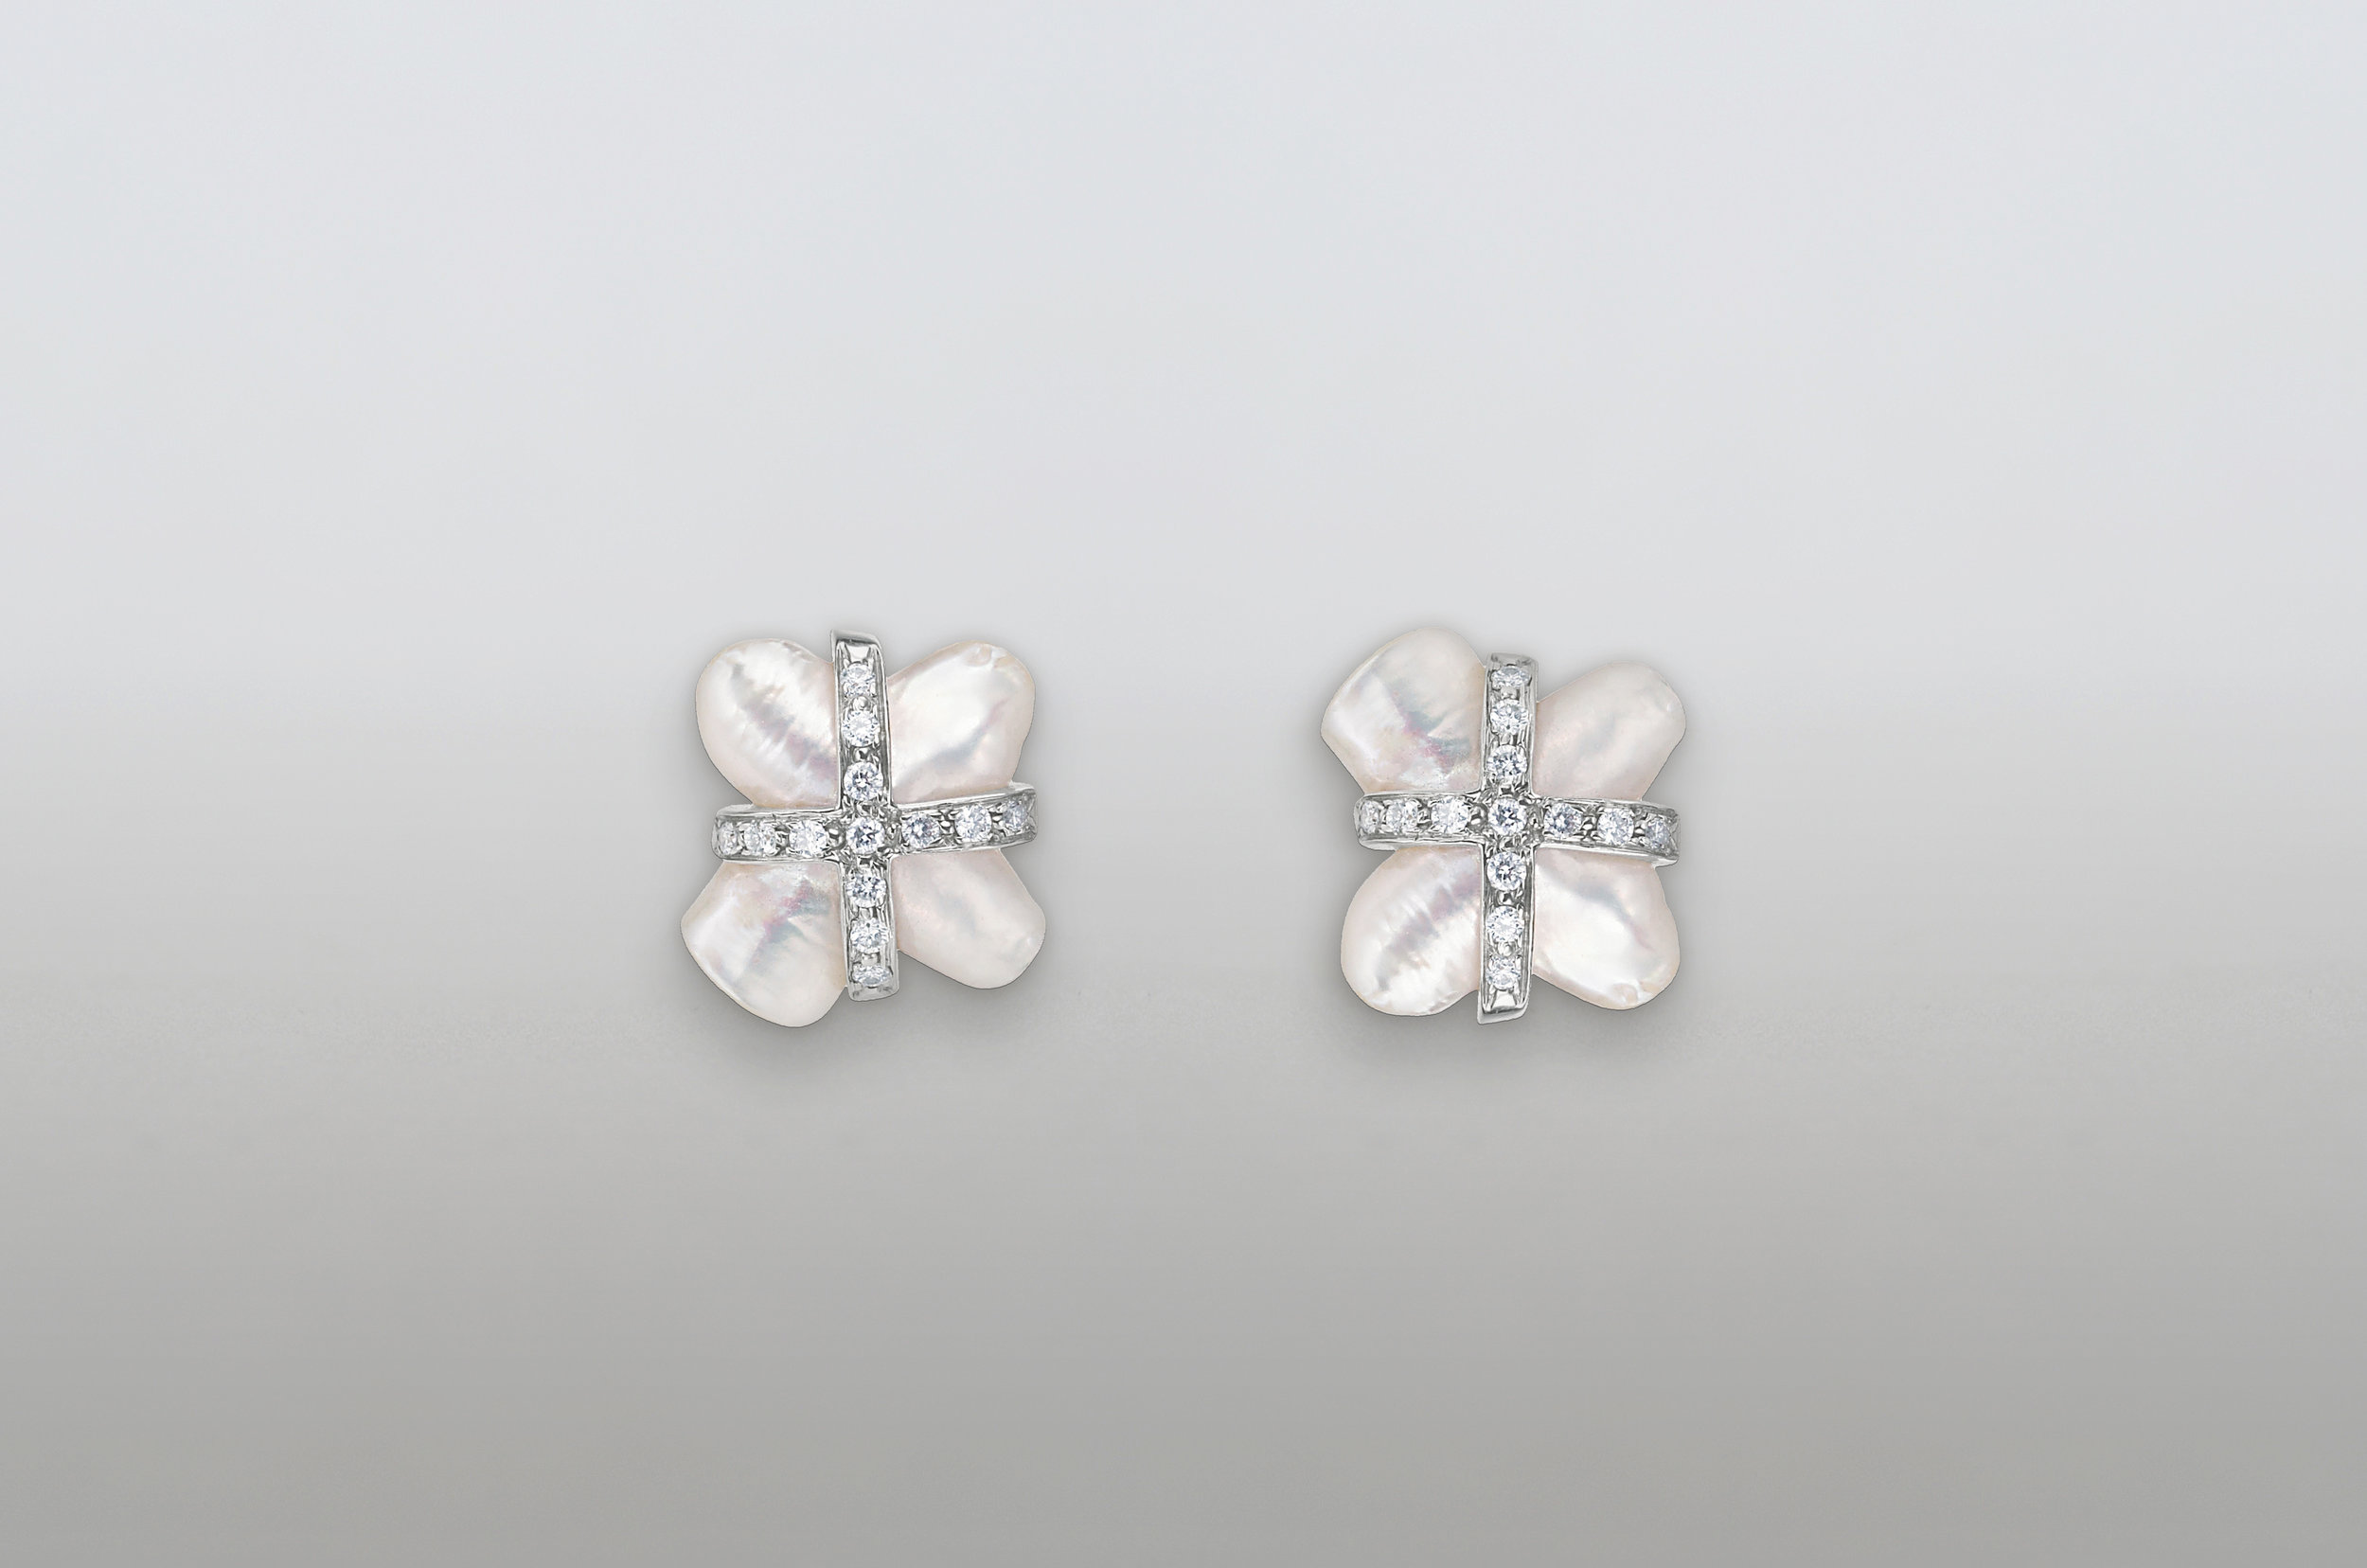 Fresh Water Pearl and .78 Carat Diamond Earrings set in 14kt White Gold